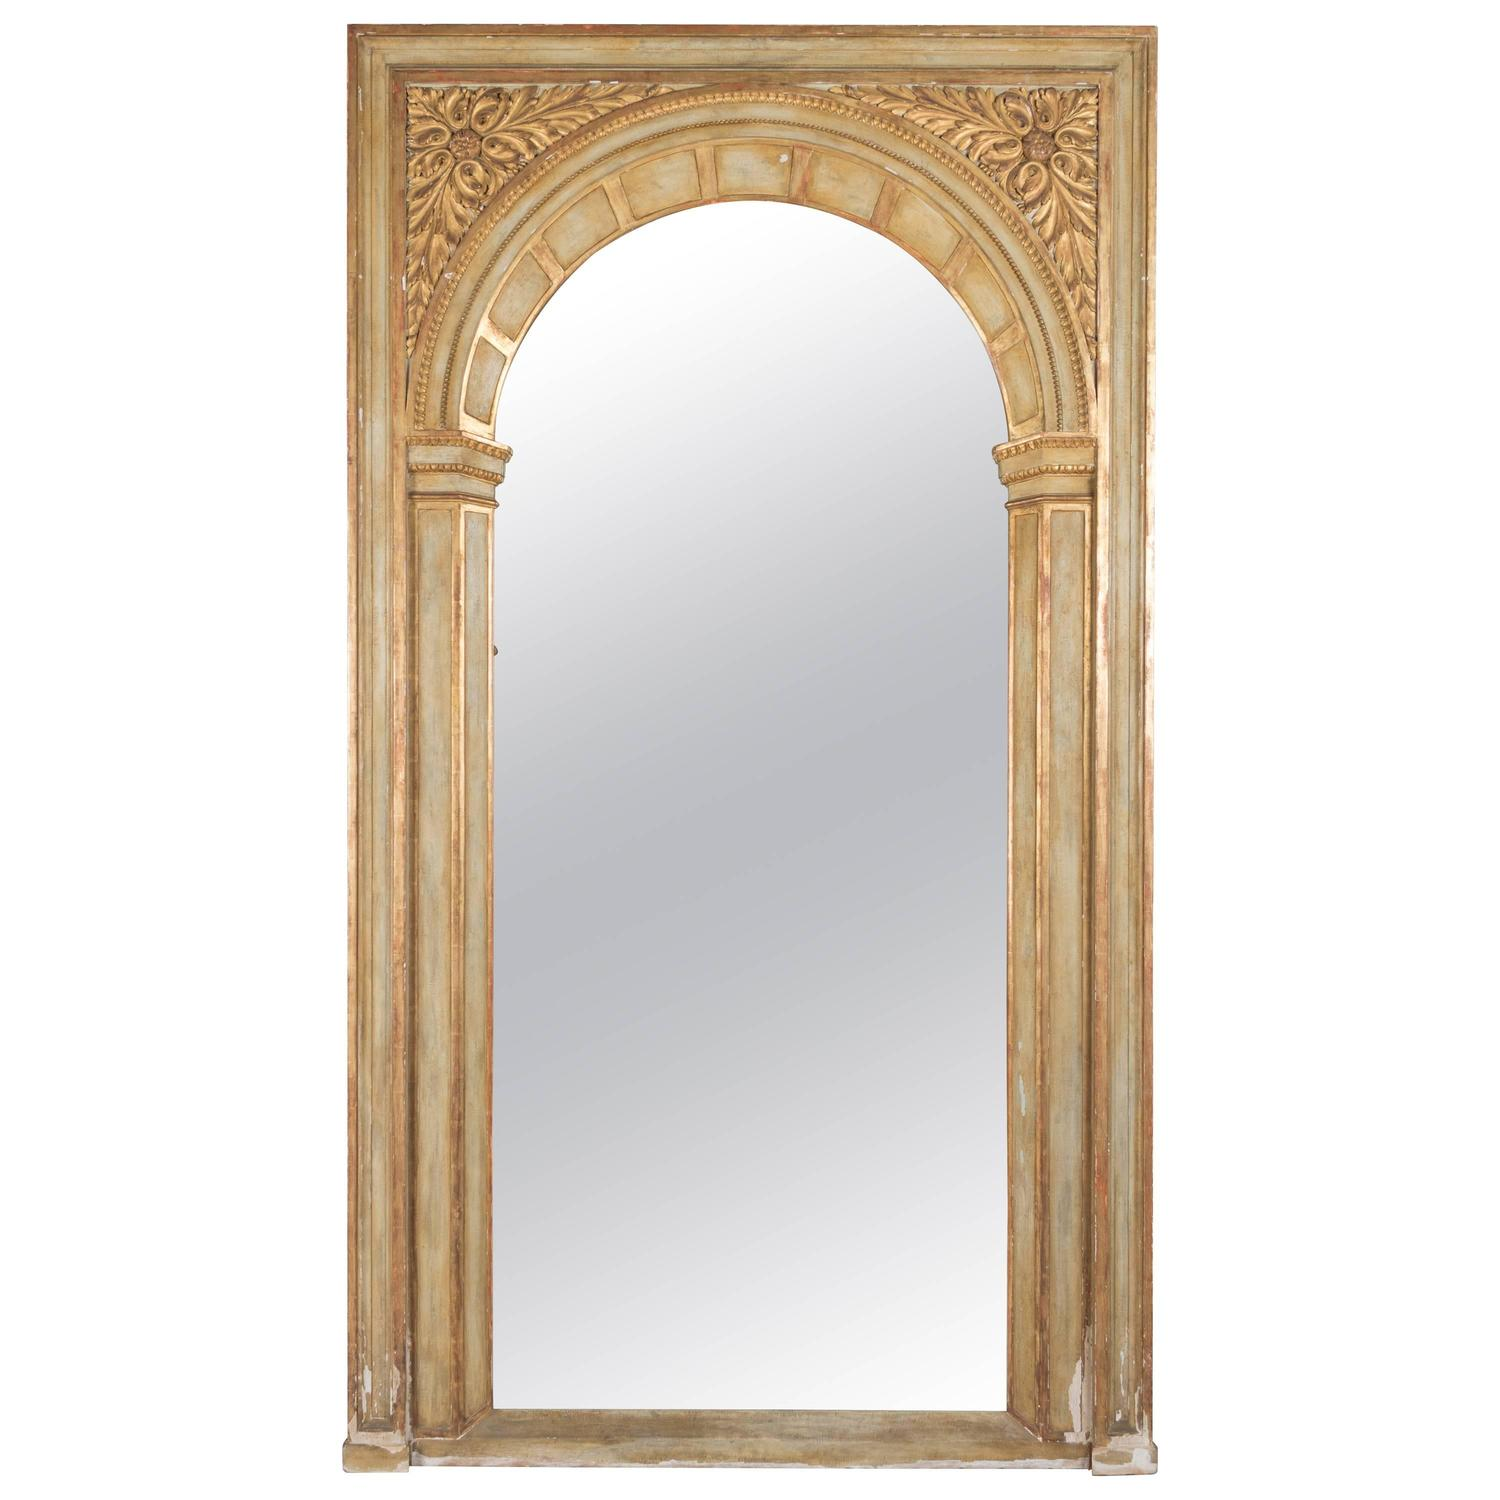 Large french parcel gilt floor mirror for sale at 1stdibs for Floor length mirror for sale